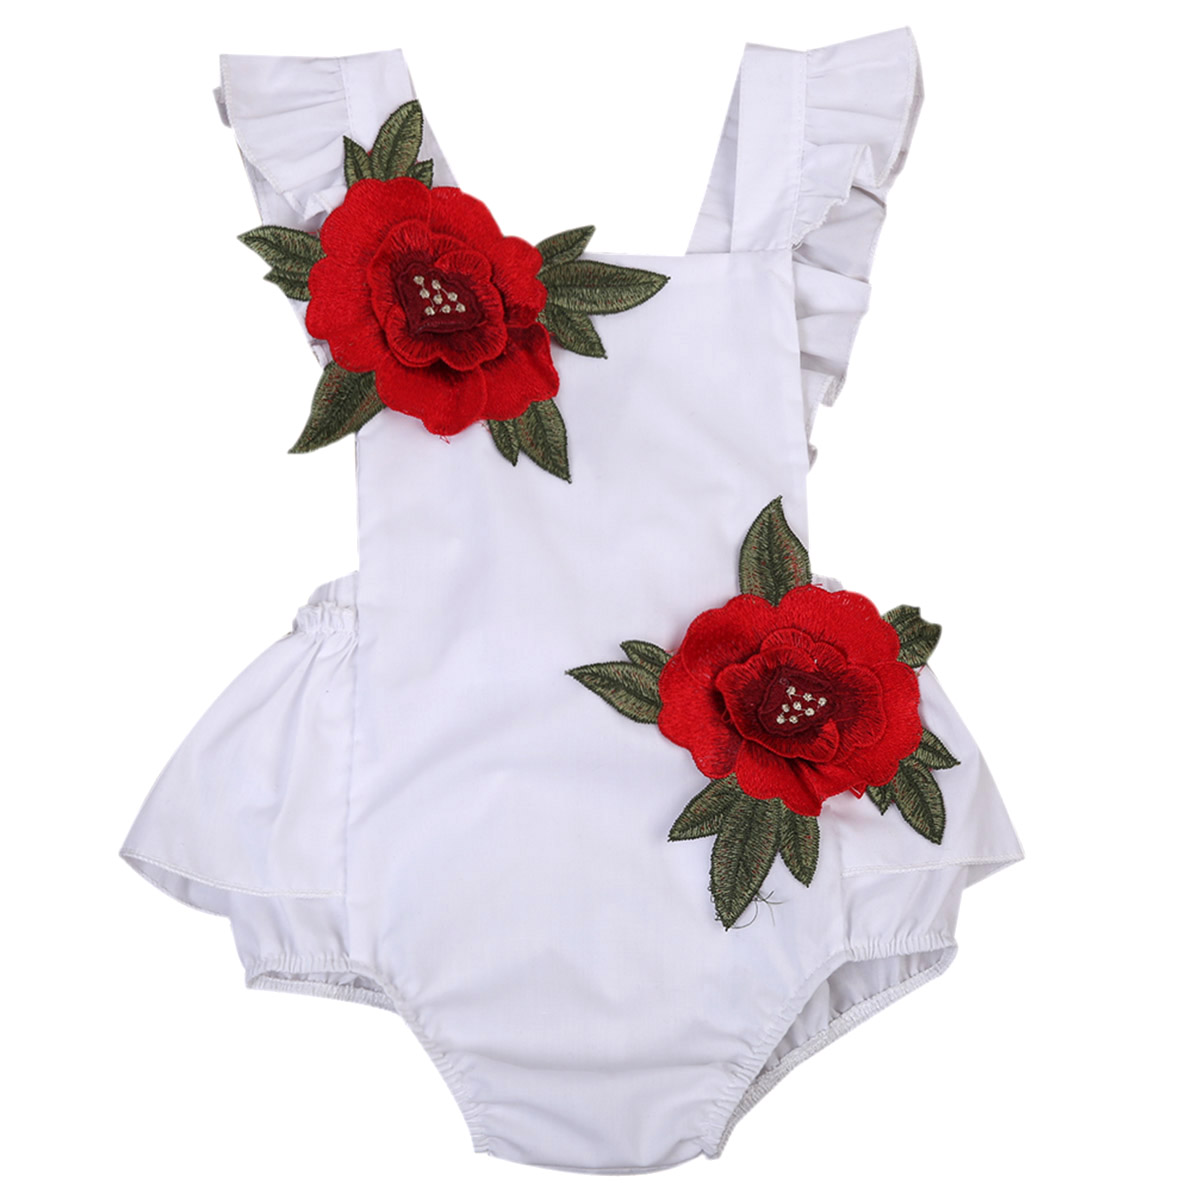 Fashion 2018 Baby Girls Newborn 3D Rose Sweet Bowknot Romper Sunsuit Outfits Clothes